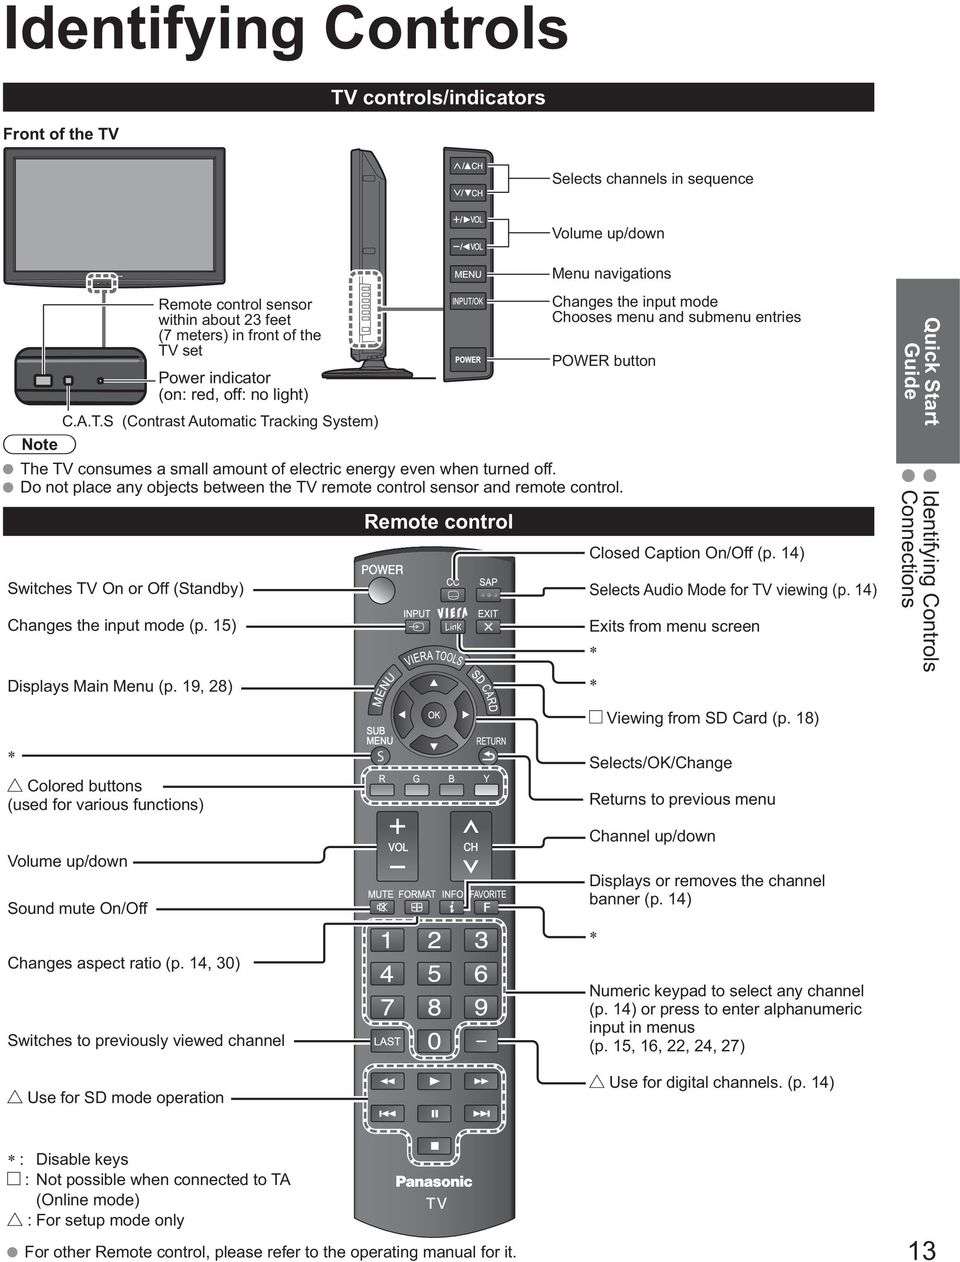 Panasonic N2Qayb Remote Control Manual - All Product From